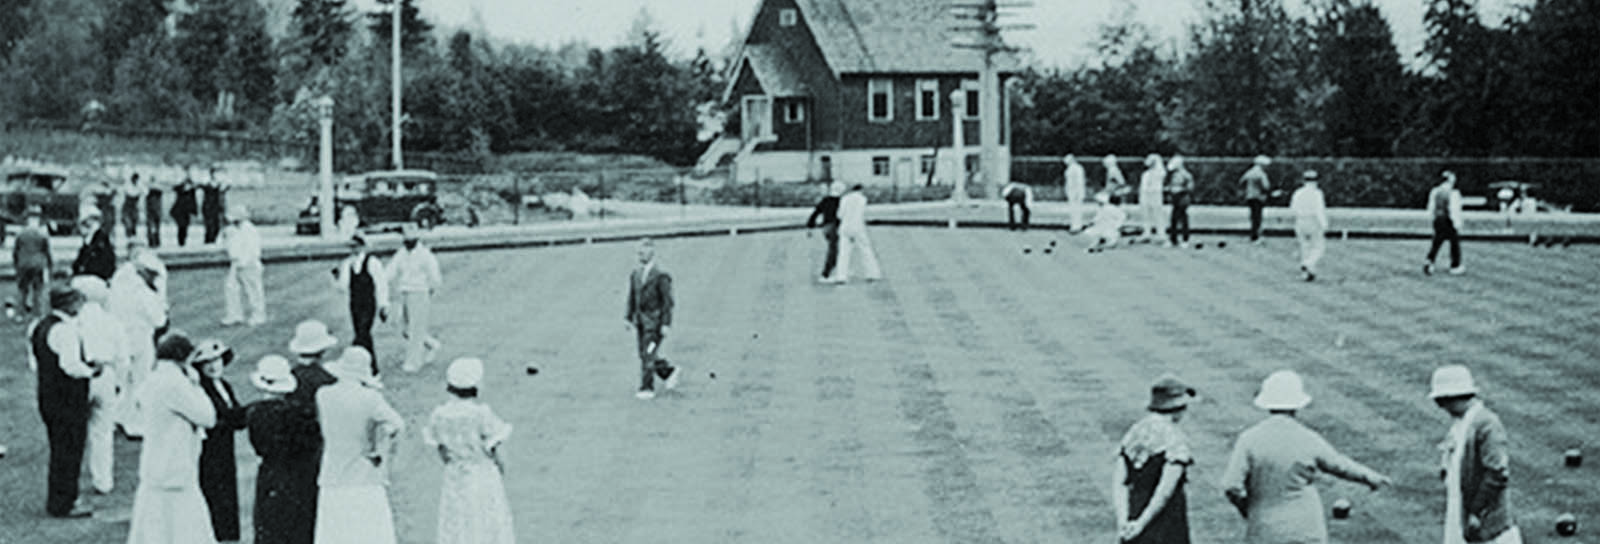 Heritage photo of Ioco bowling green